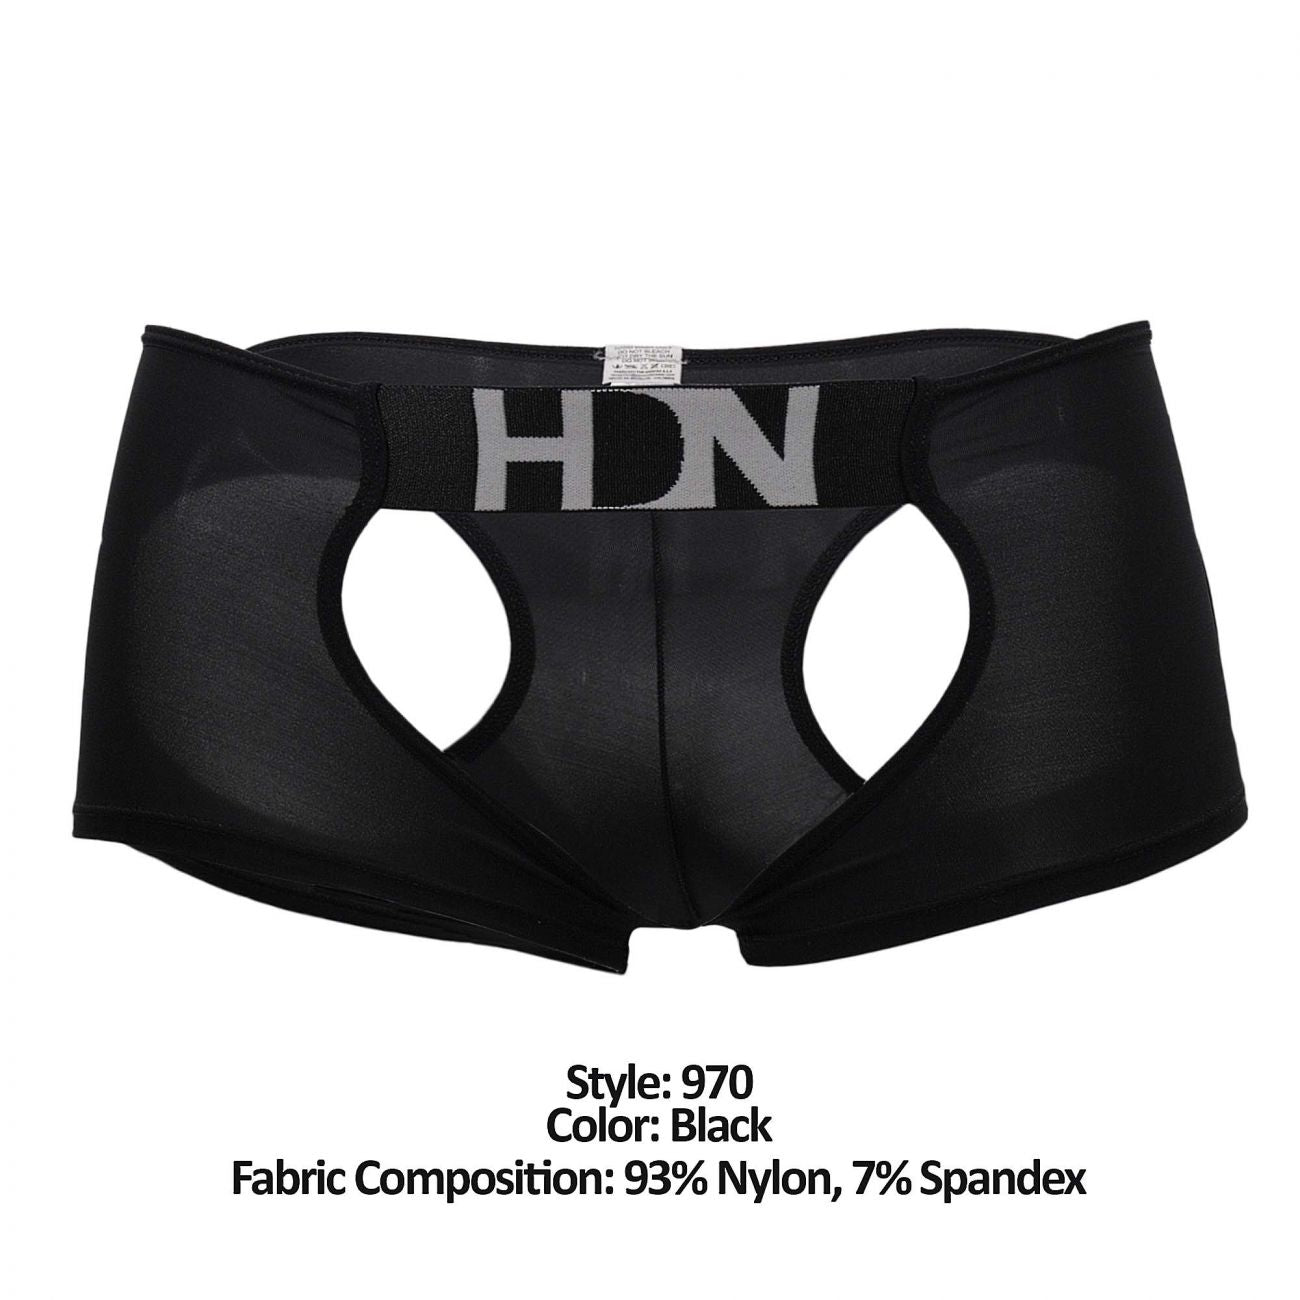 Hidden 970 Open Trunks Color Black